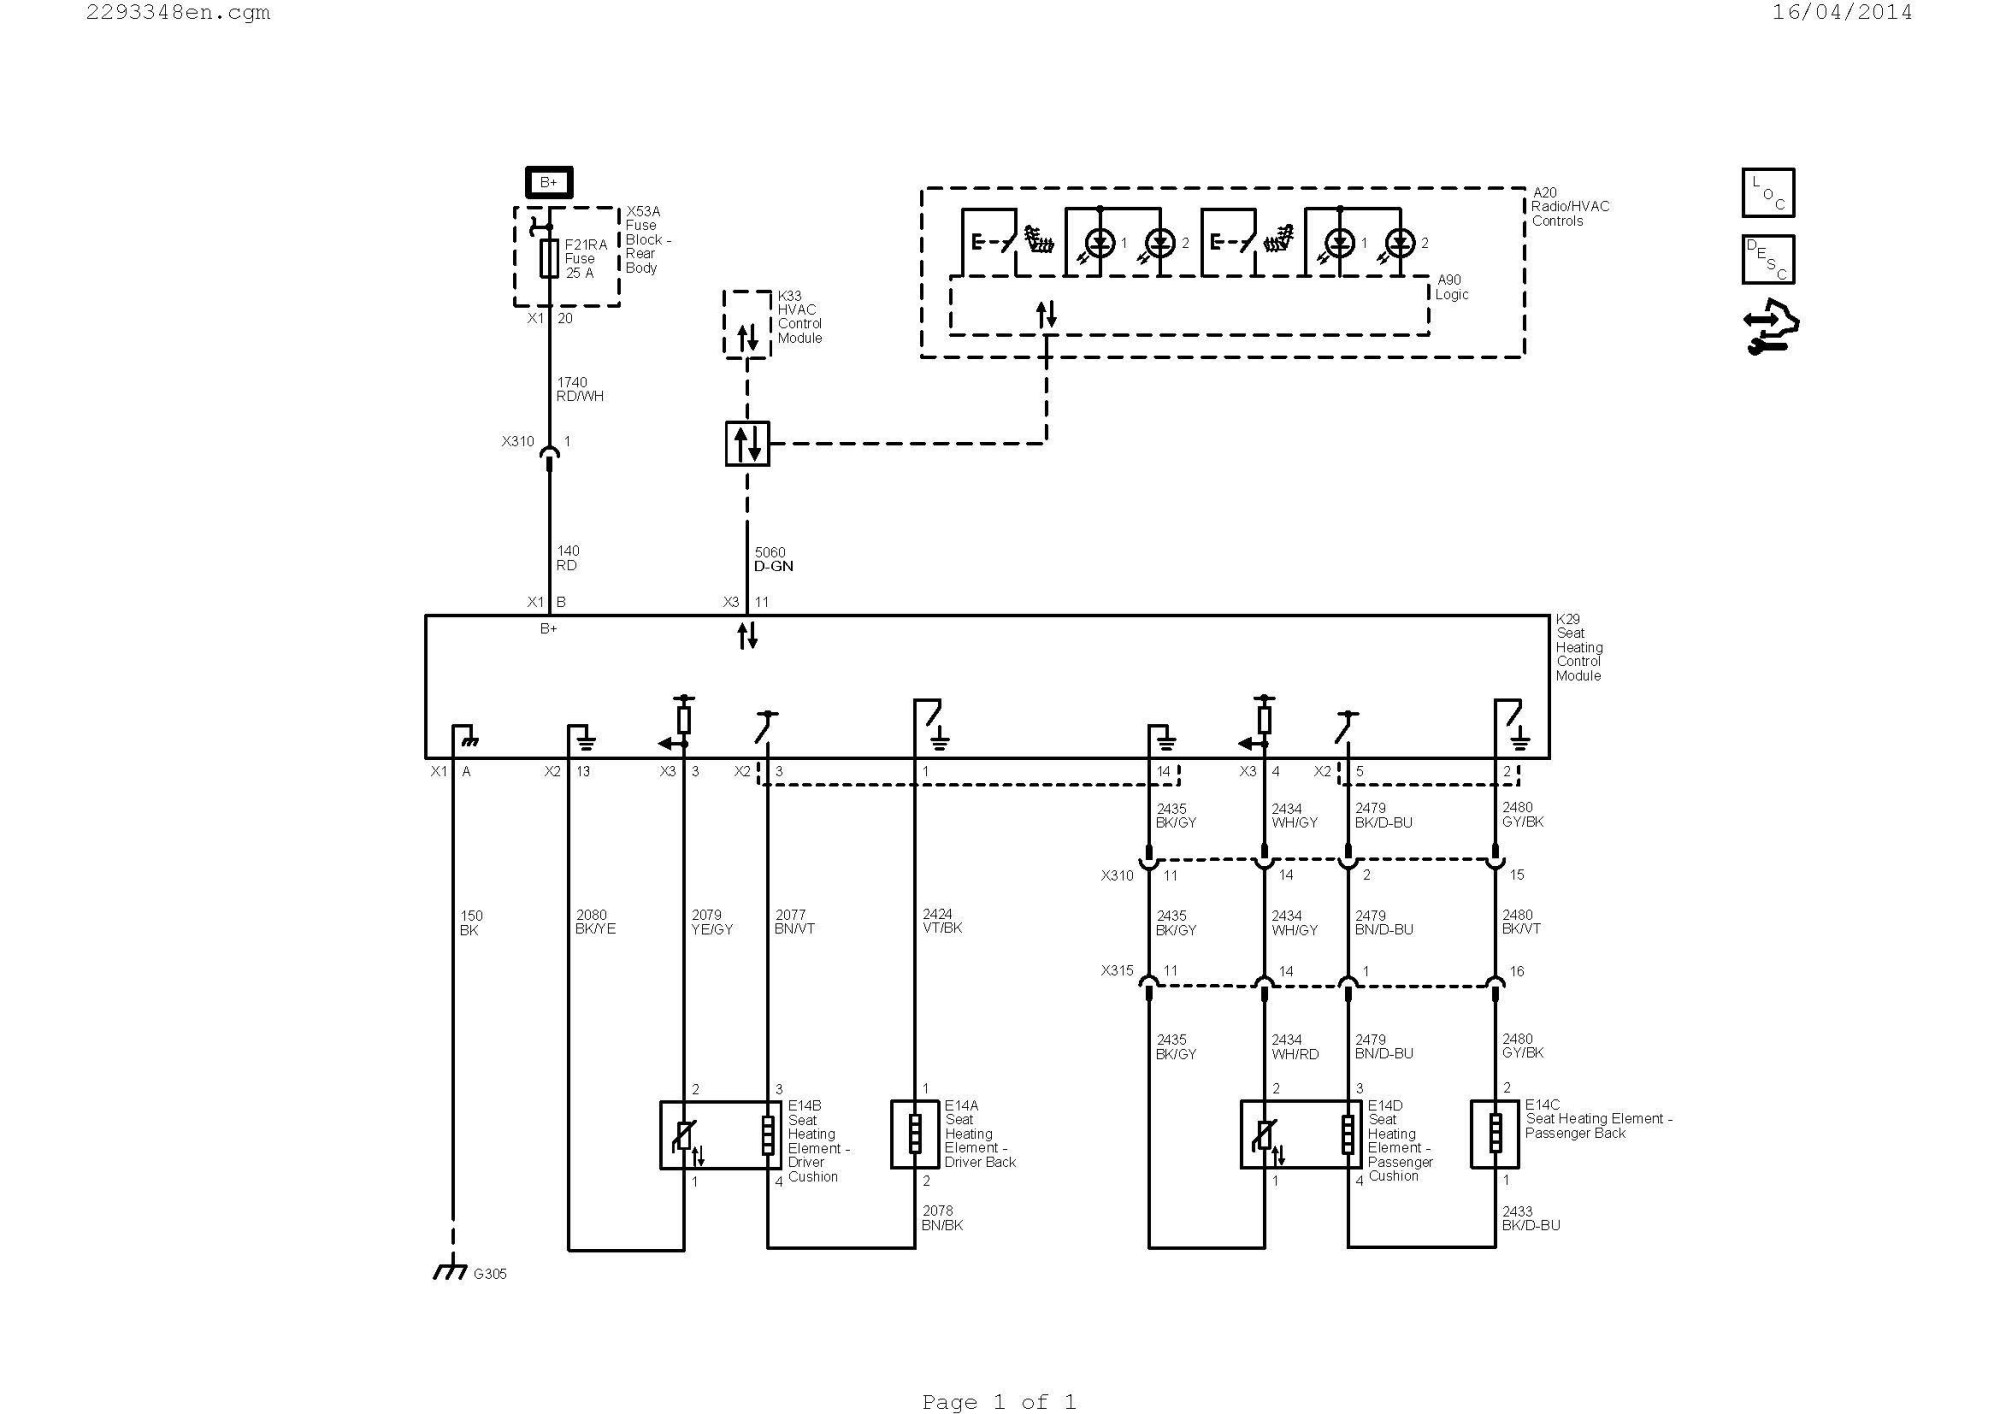 Fantech Wiring Diagram - more blower manufacturer listings on